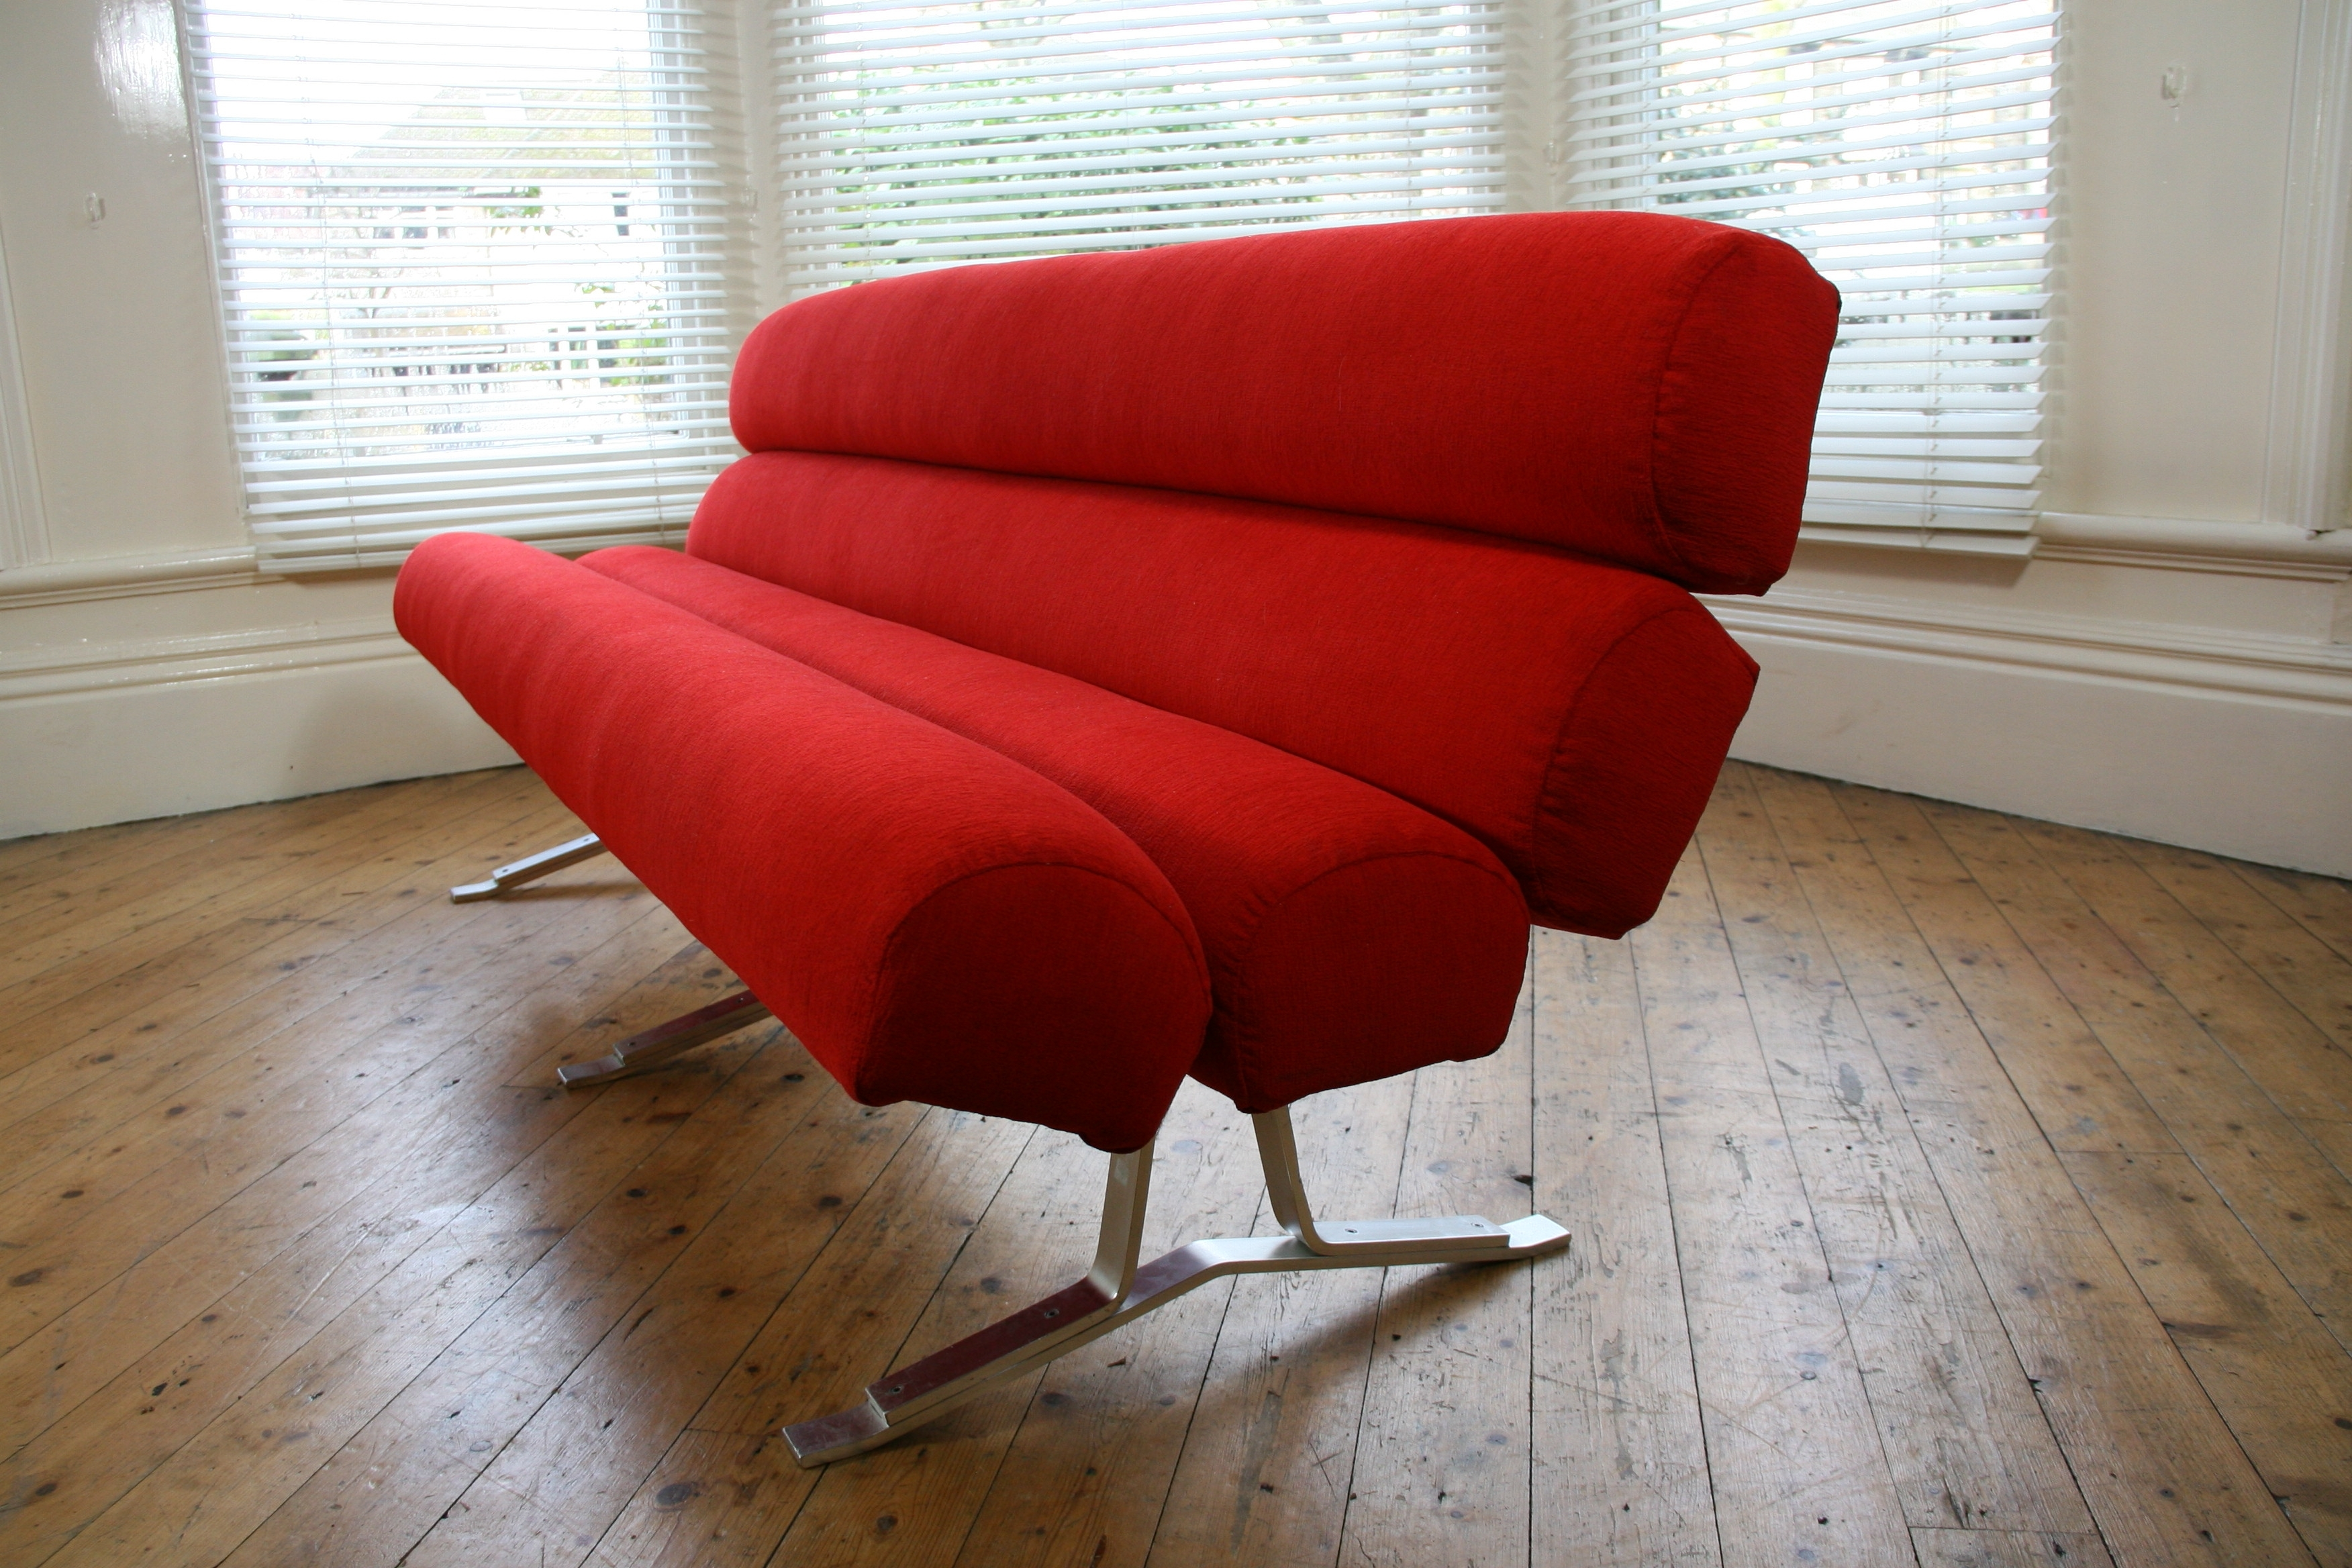 Retro Sofas And Chairs Pertaining To Fashionable Modern Style Furniture Retro With (View 4 of 20)